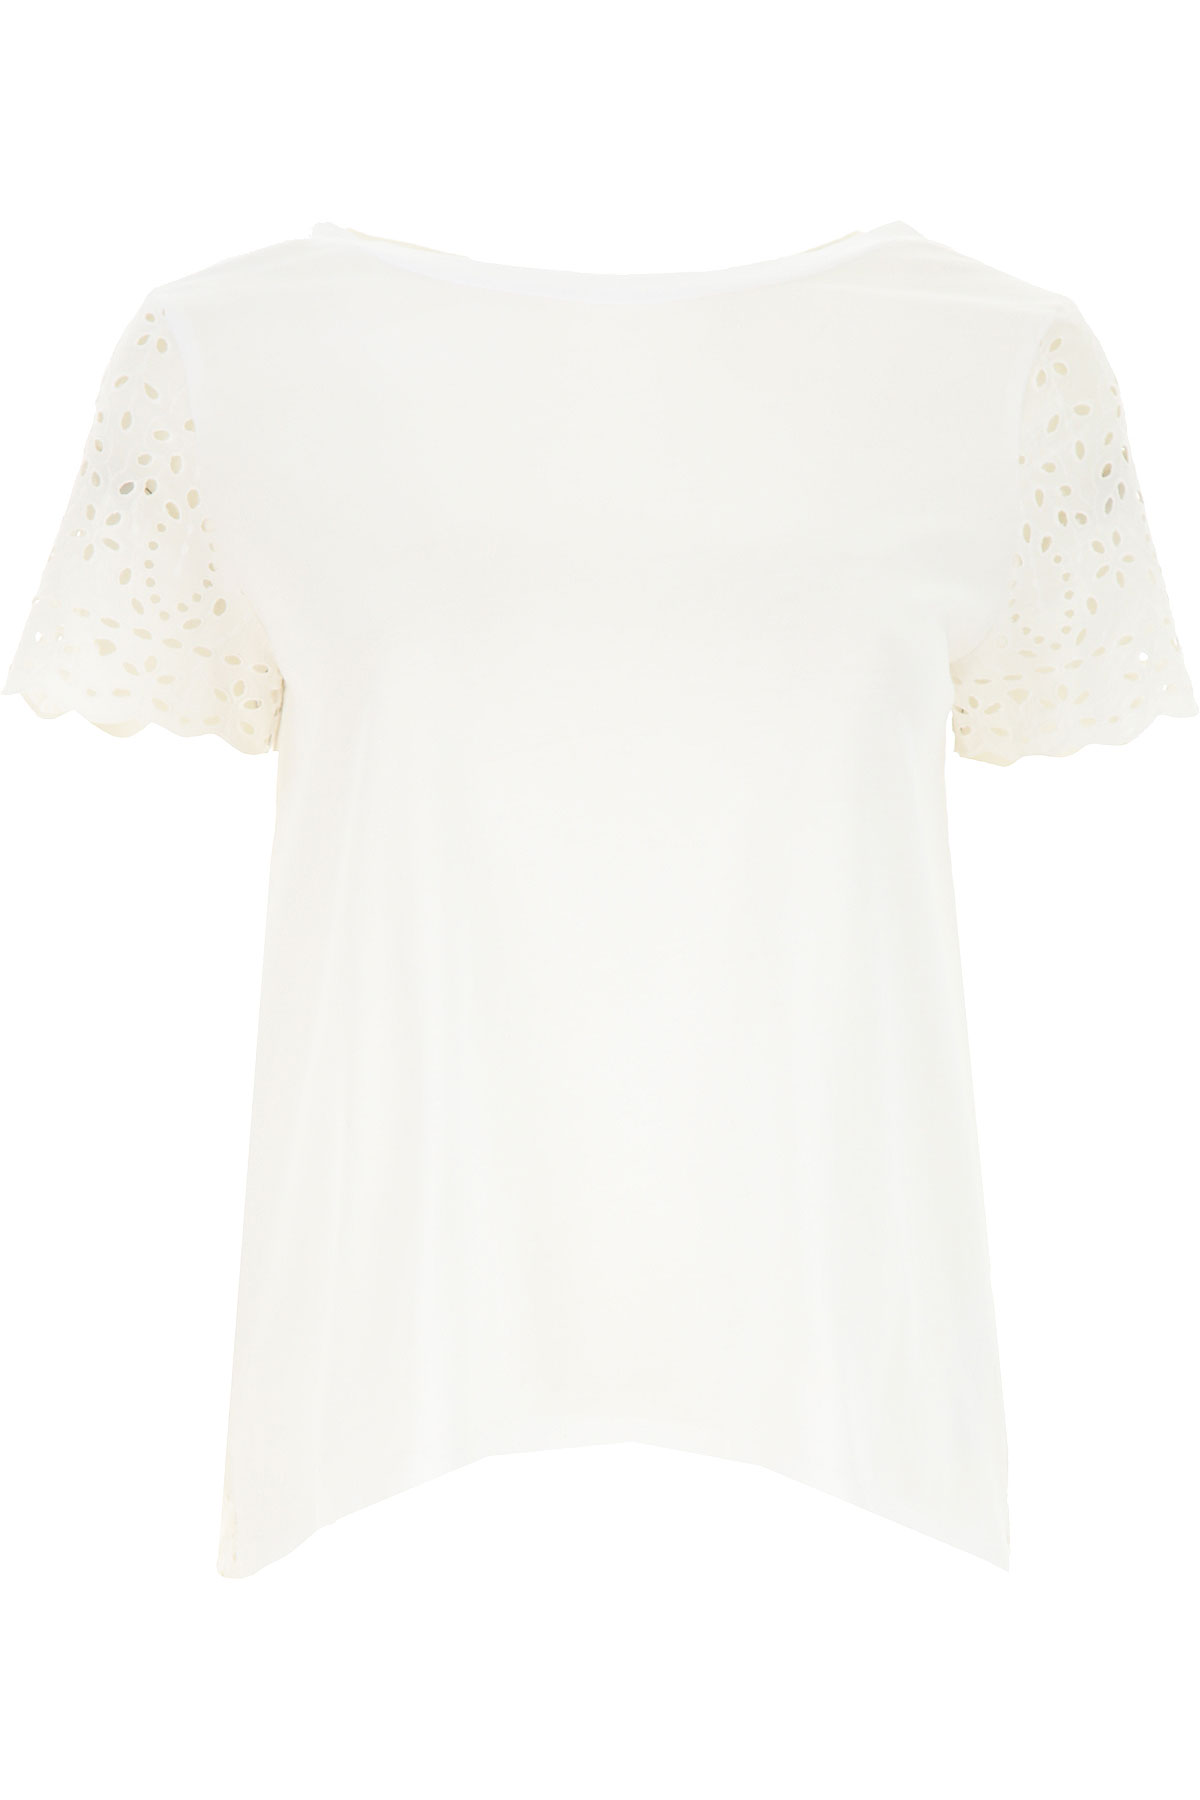 Semicouture Top for Women On Sale, White, Cotton, 2019, 4 6